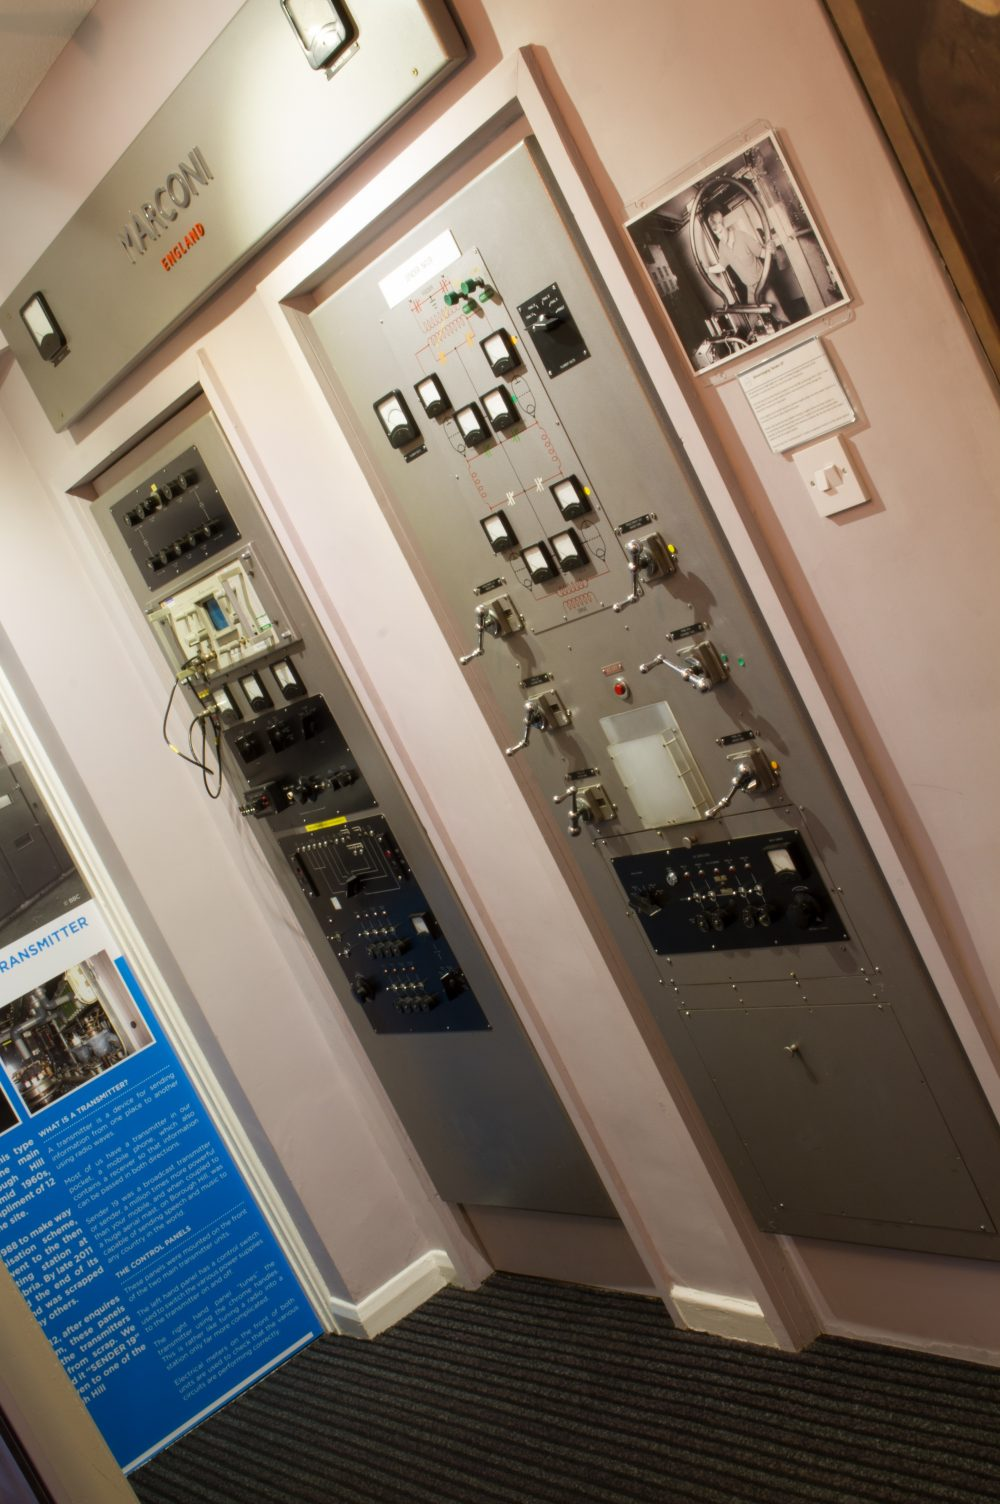 A photo of electronic panels, showing the Marconi Transmitter Panels.